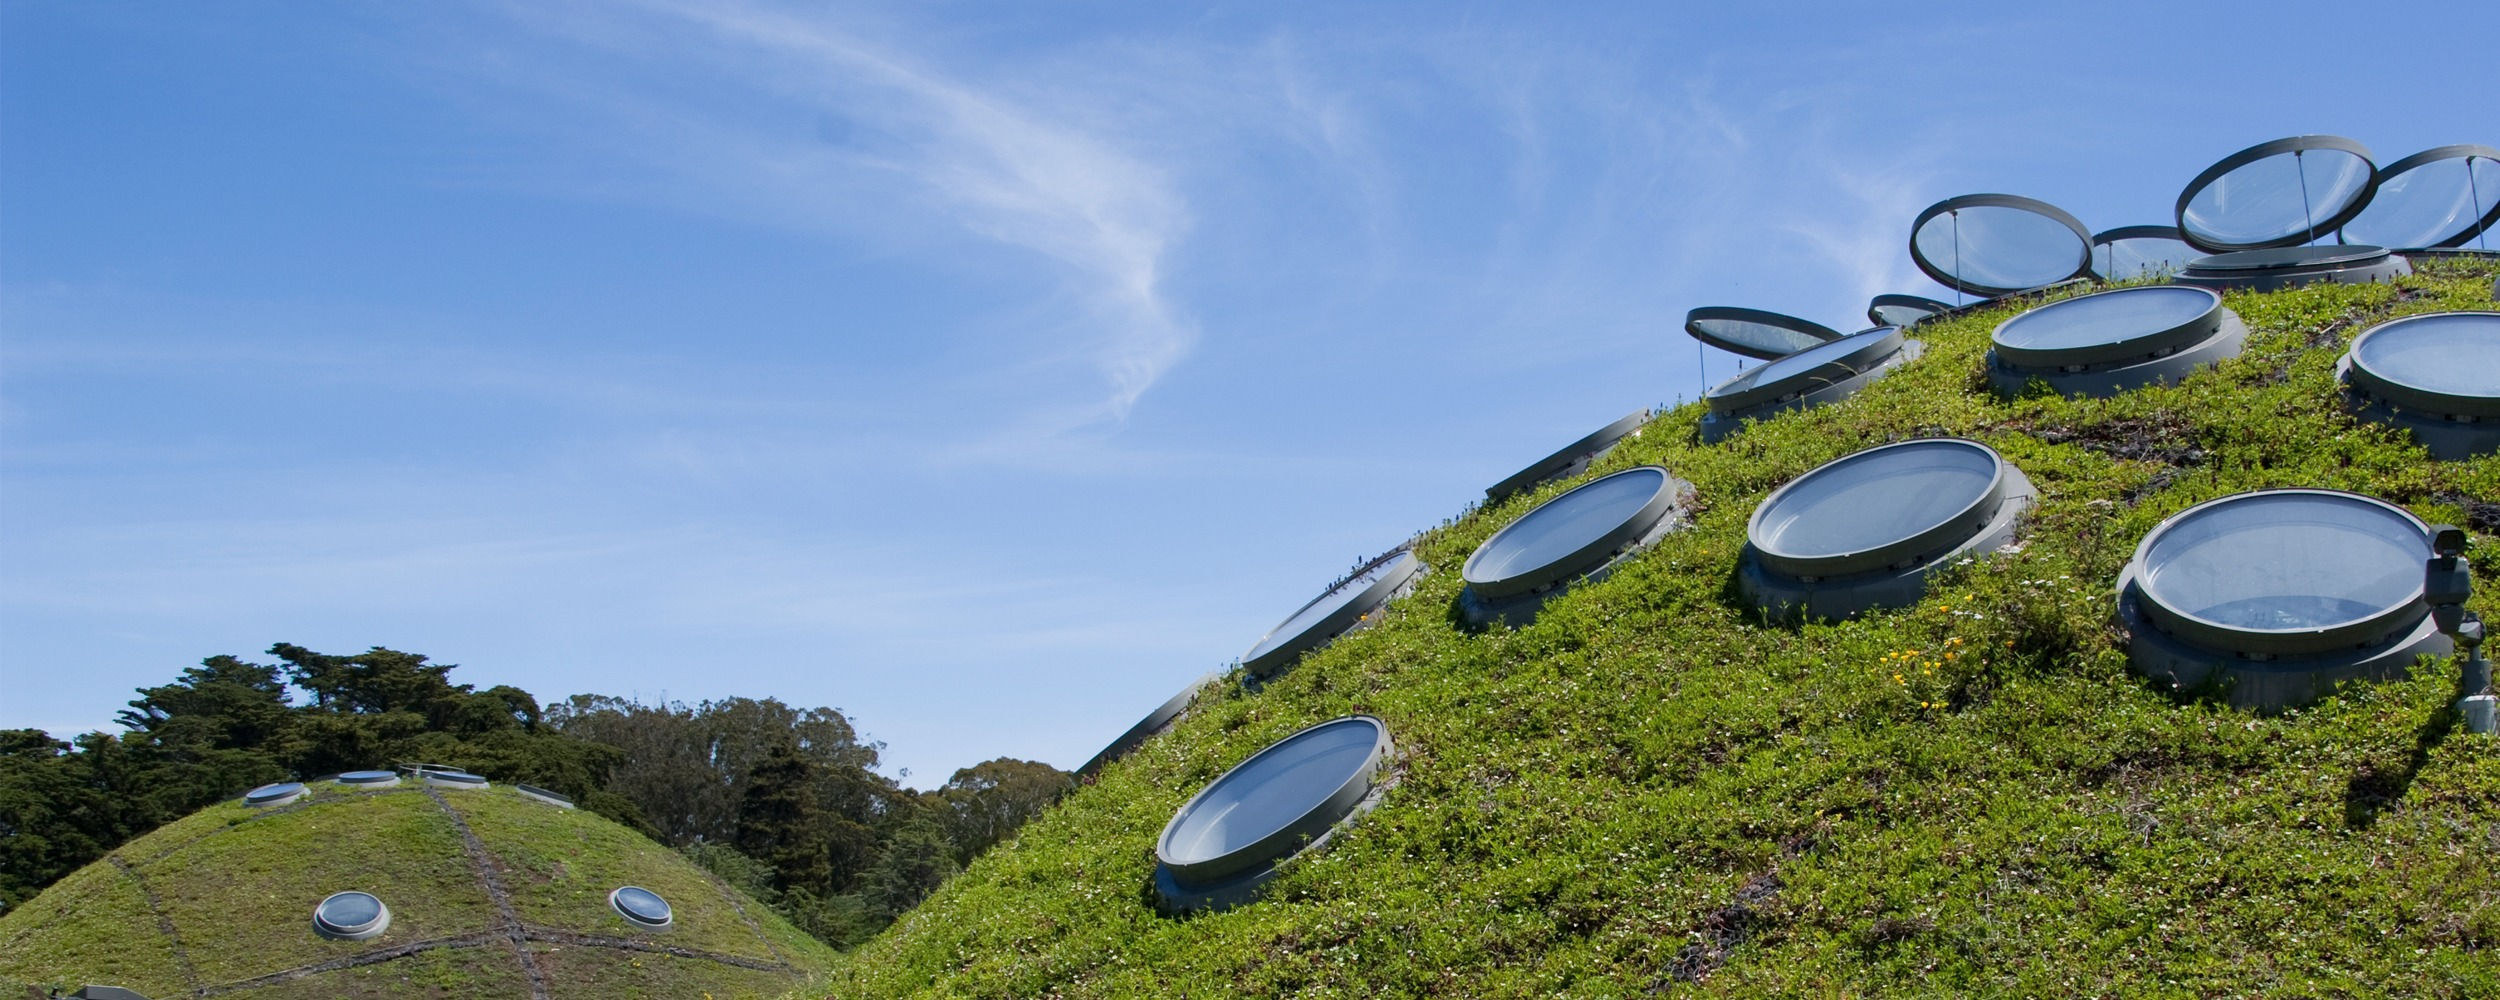 The green roof: how ancient architecture shaped modern sustainable design